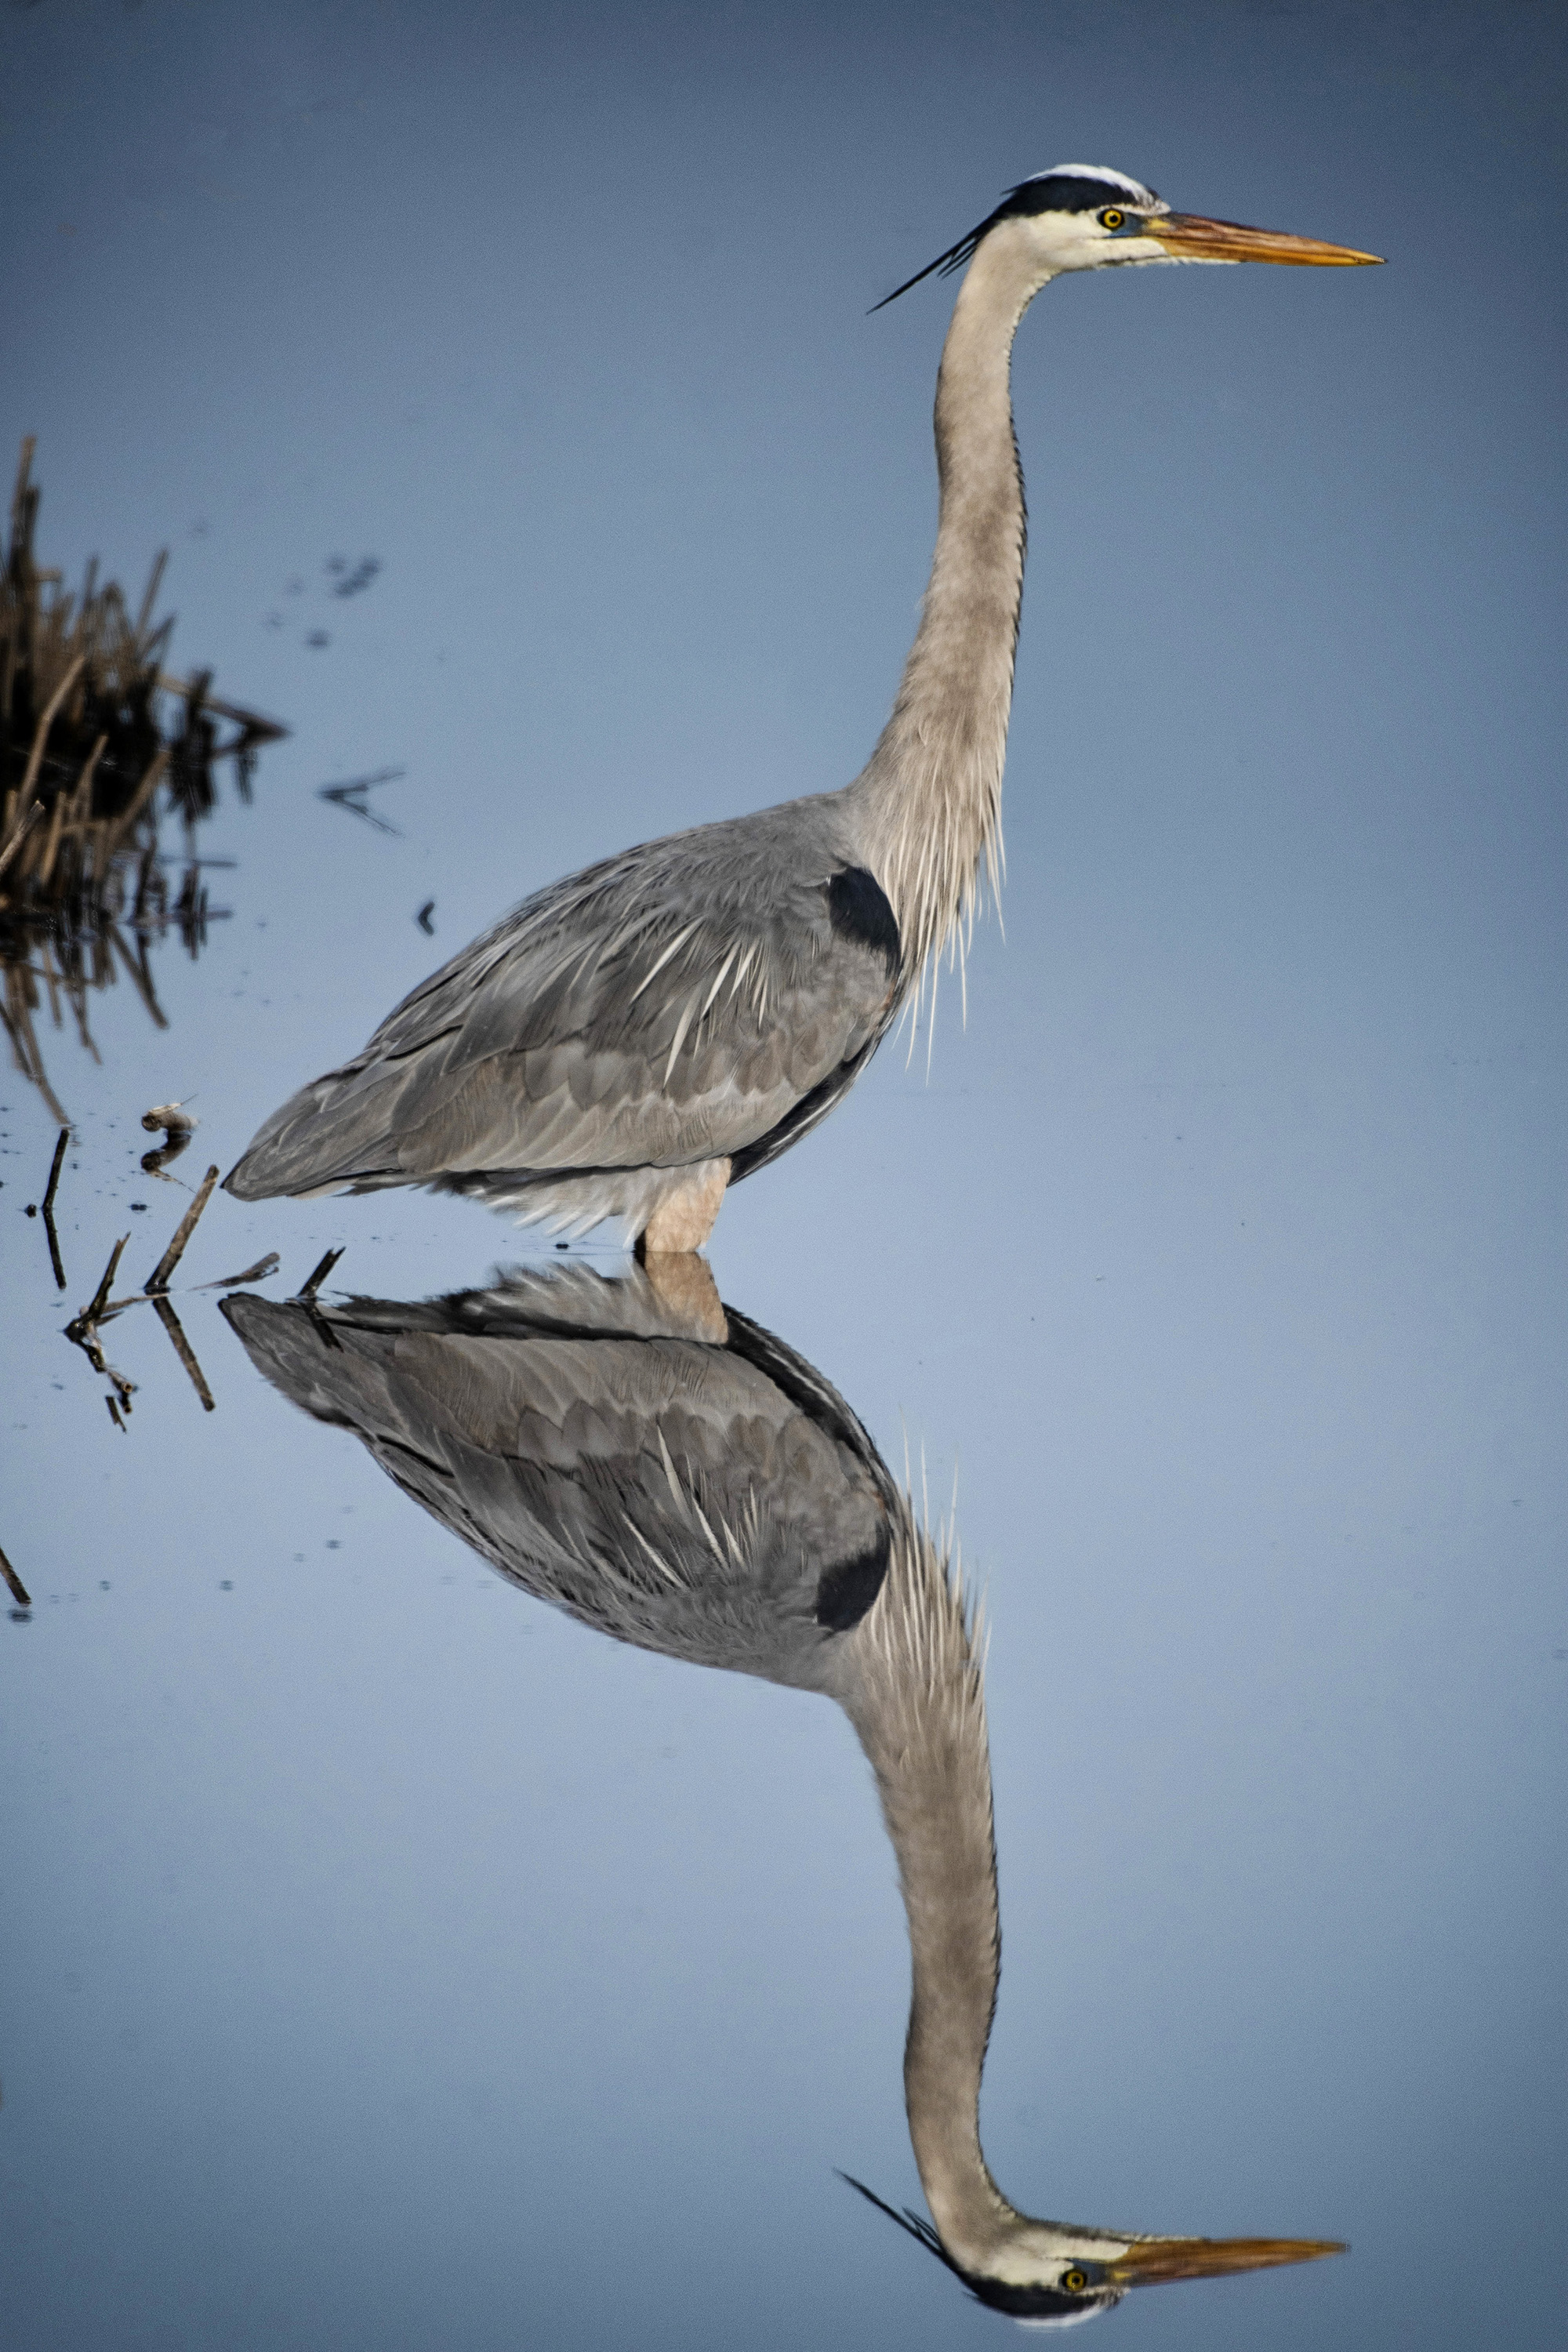 Great blue heron reflection at Bombay Hook NWR